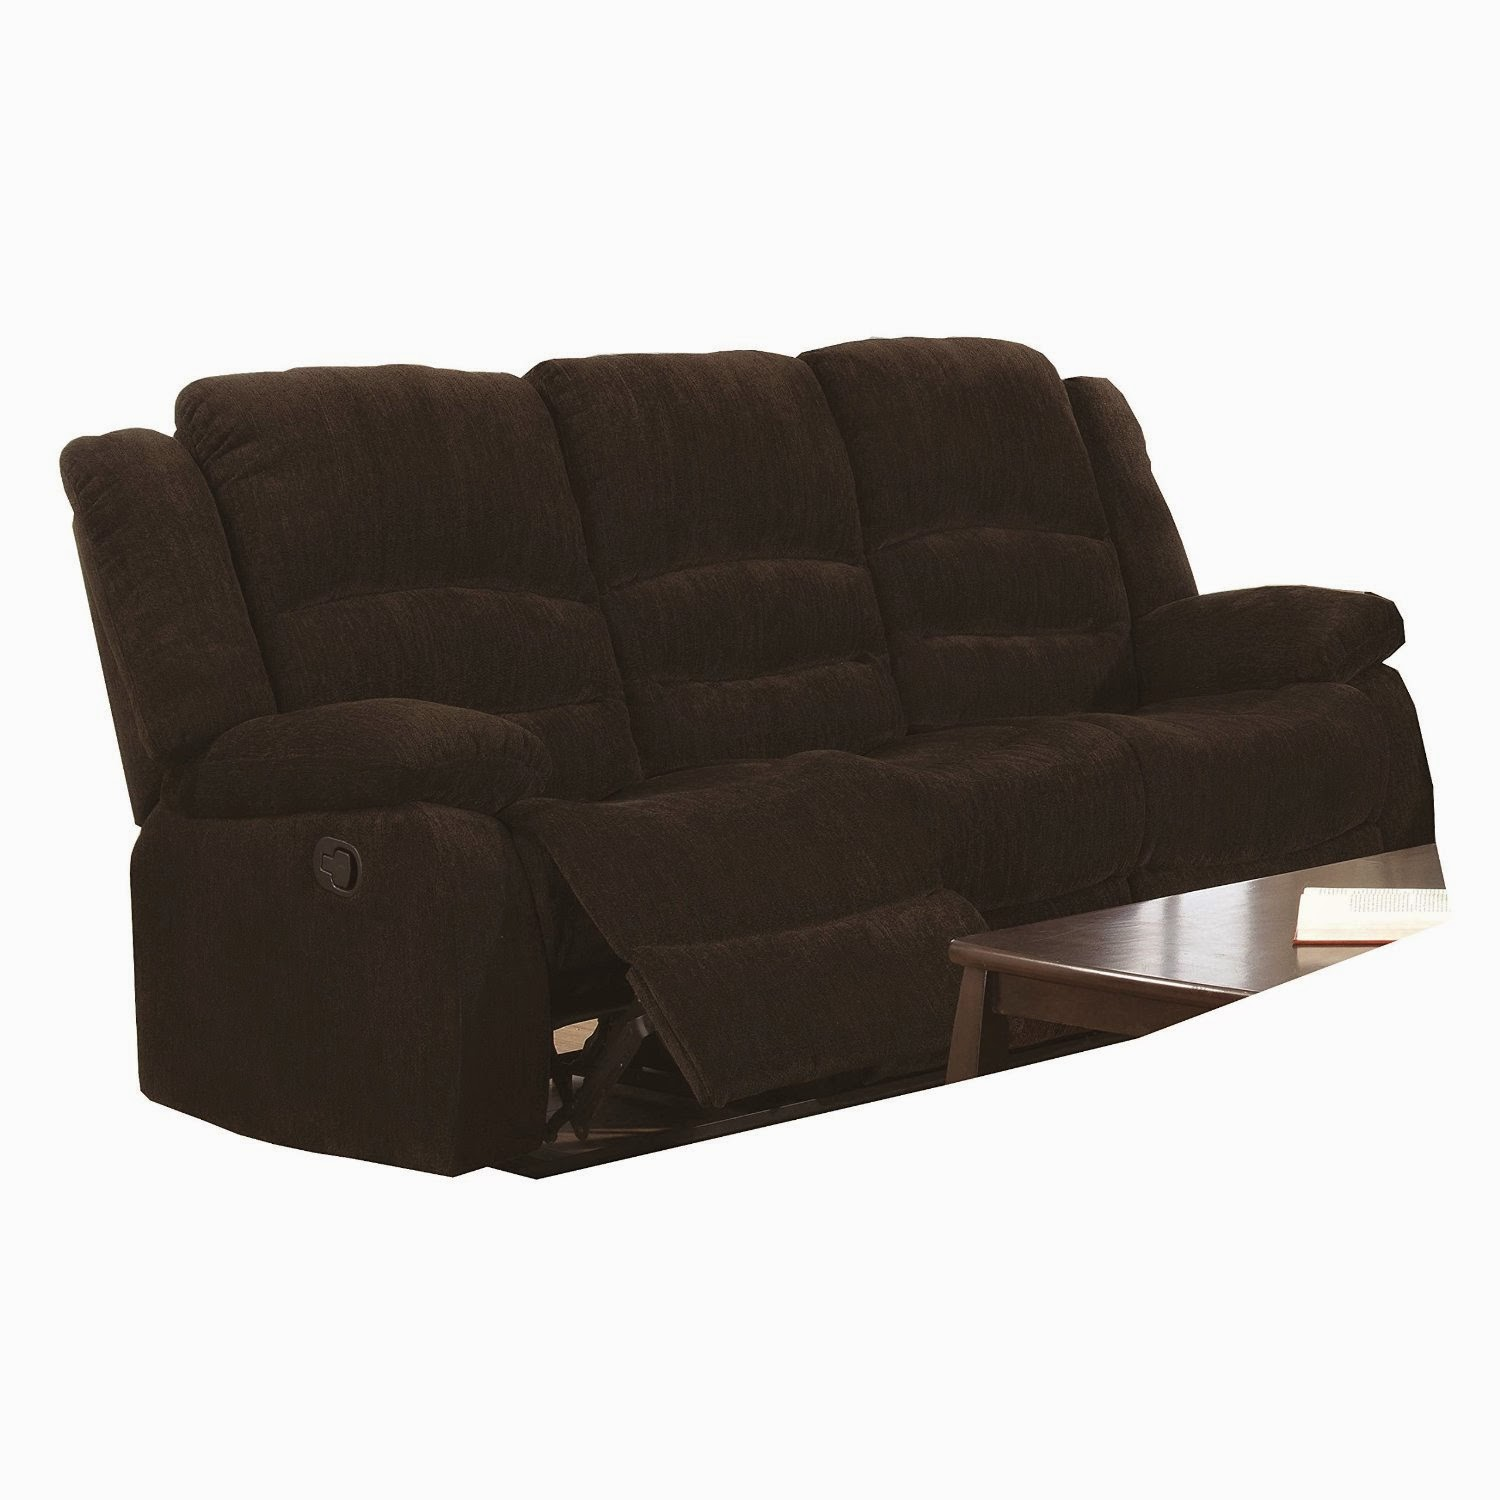 Cheap Recliner Sofas For Sale Black Leather Reclining: Cheap Recliner Sofas For Sale: Triple Reclining Sofa Fabric